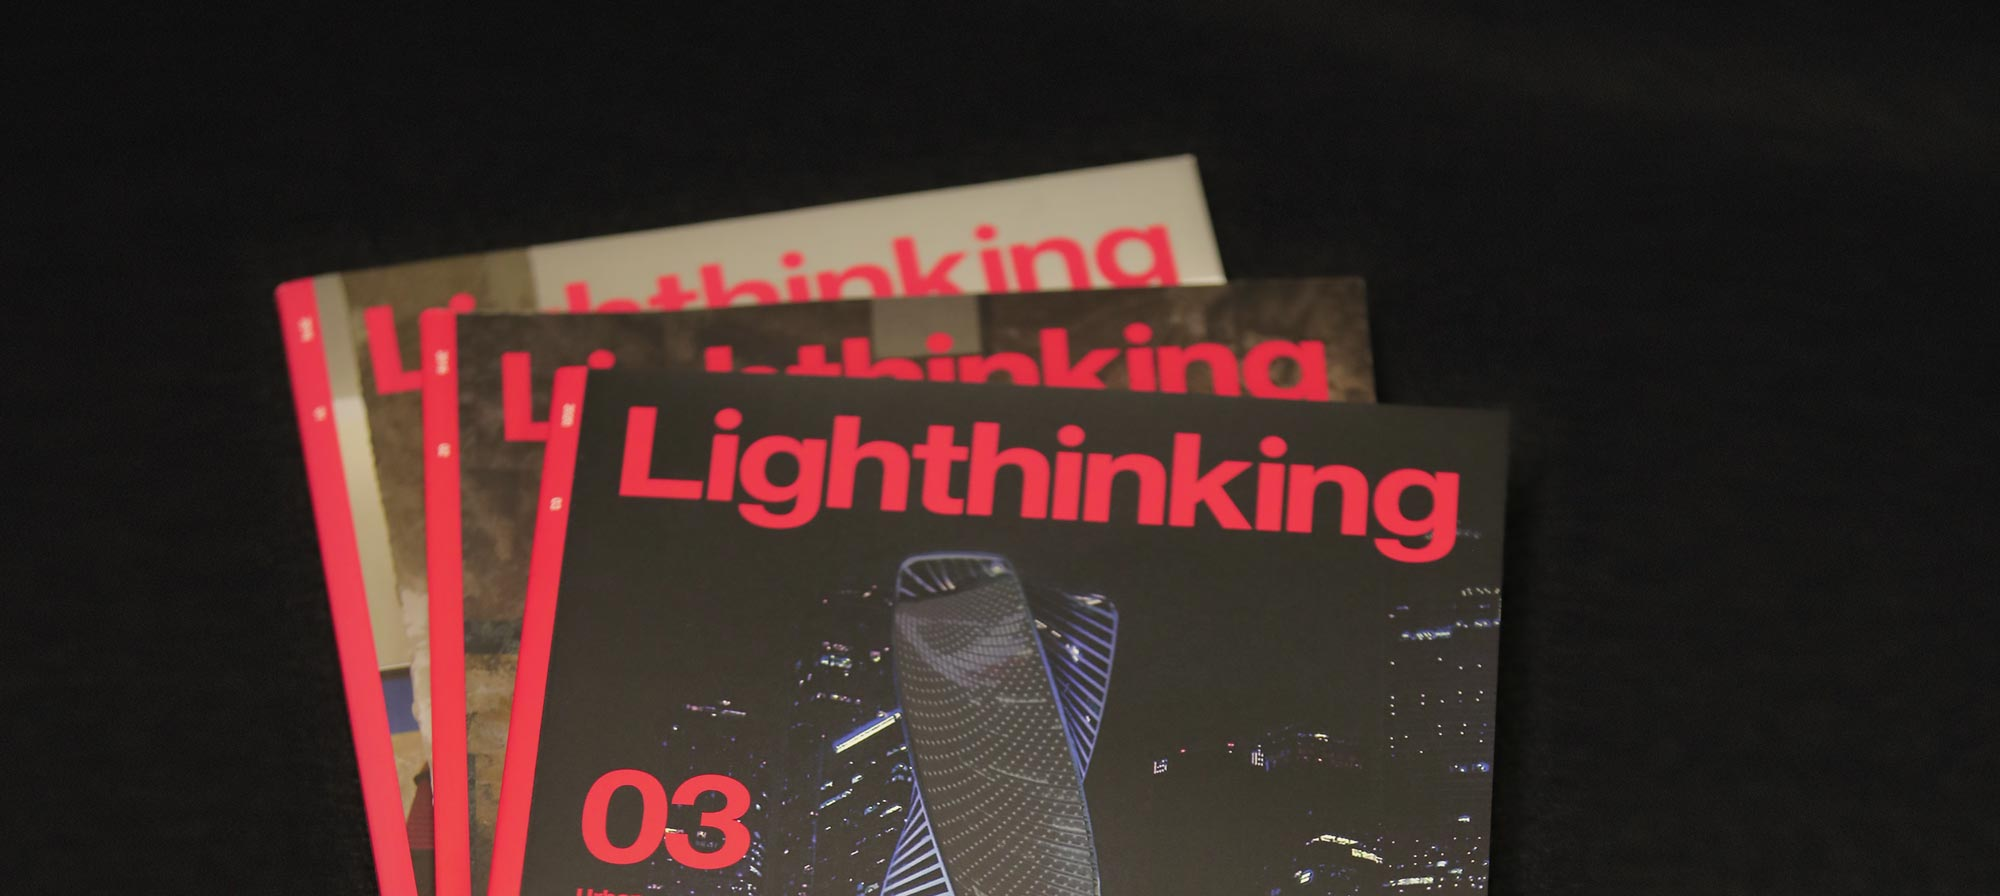 iGuzzini presents Lighthinking 03, dedicated to our cities